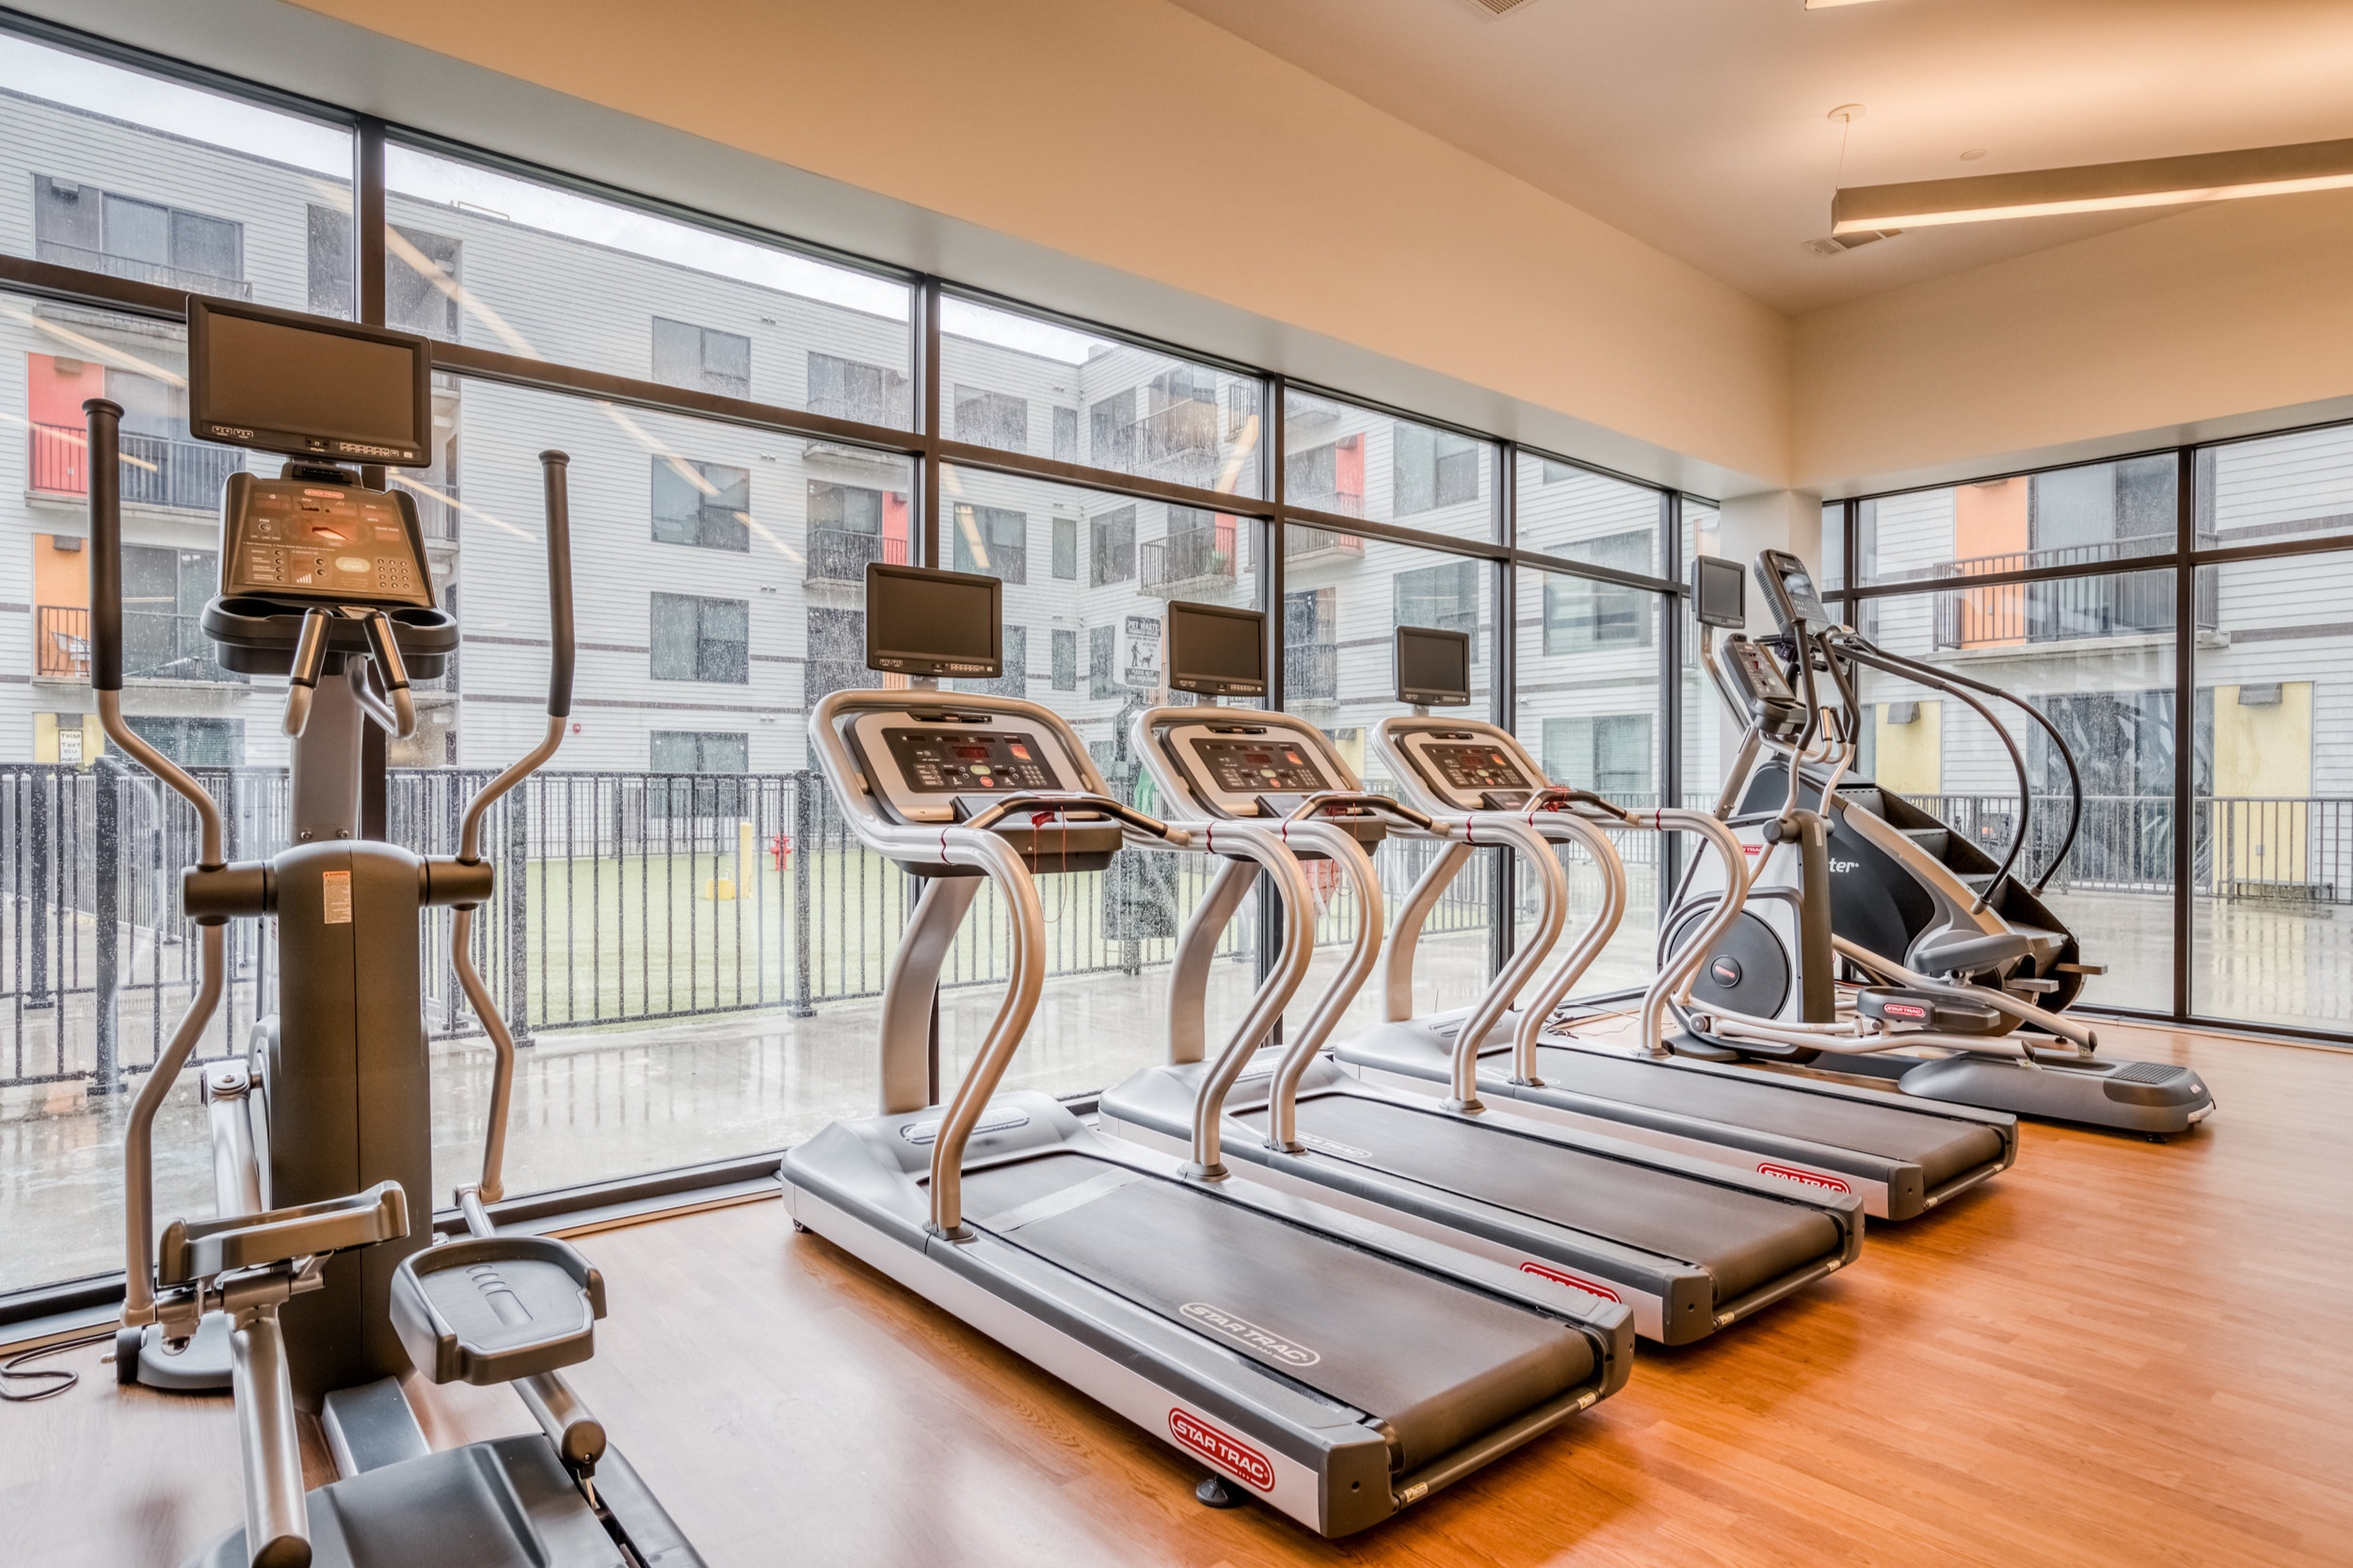 lodgeur-mid-main-lofts-247-gym-midtown-houson.jpg